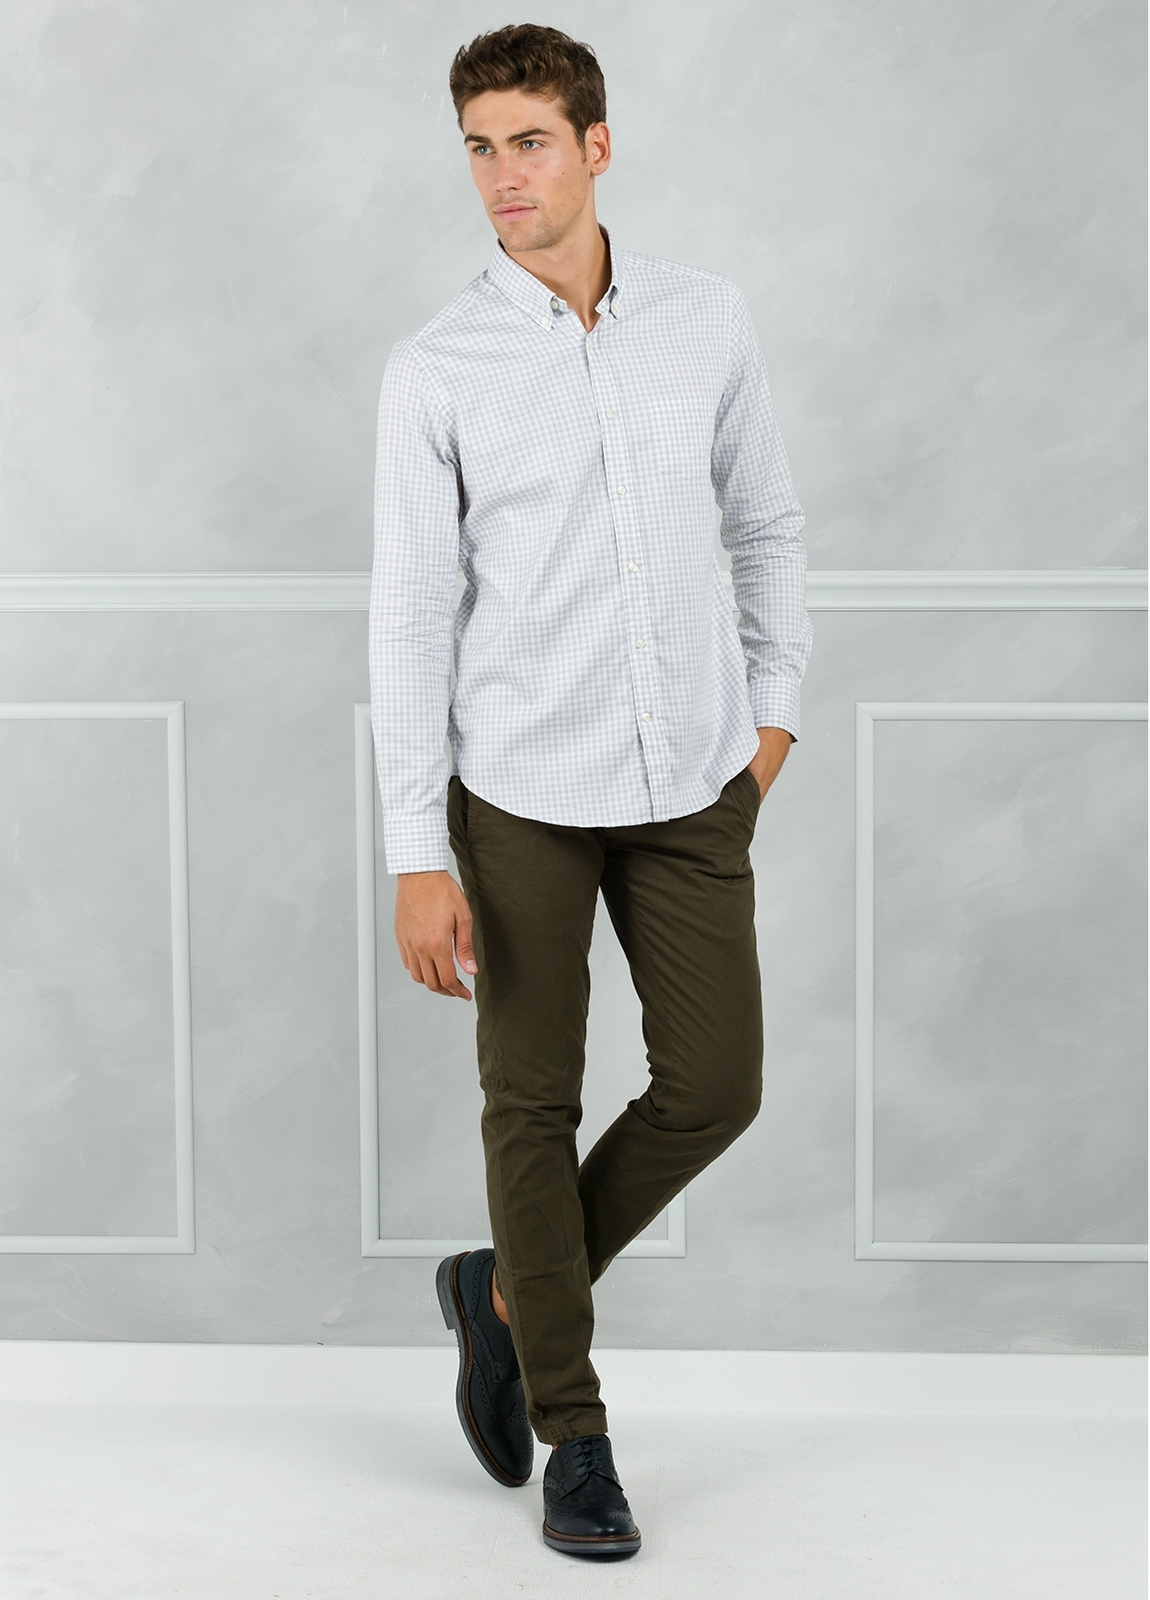 Camisa Leisure Wear REGULAR FIT Modelo BOTTON DOWN con cuadro vichy color gris. 100% Algodón.